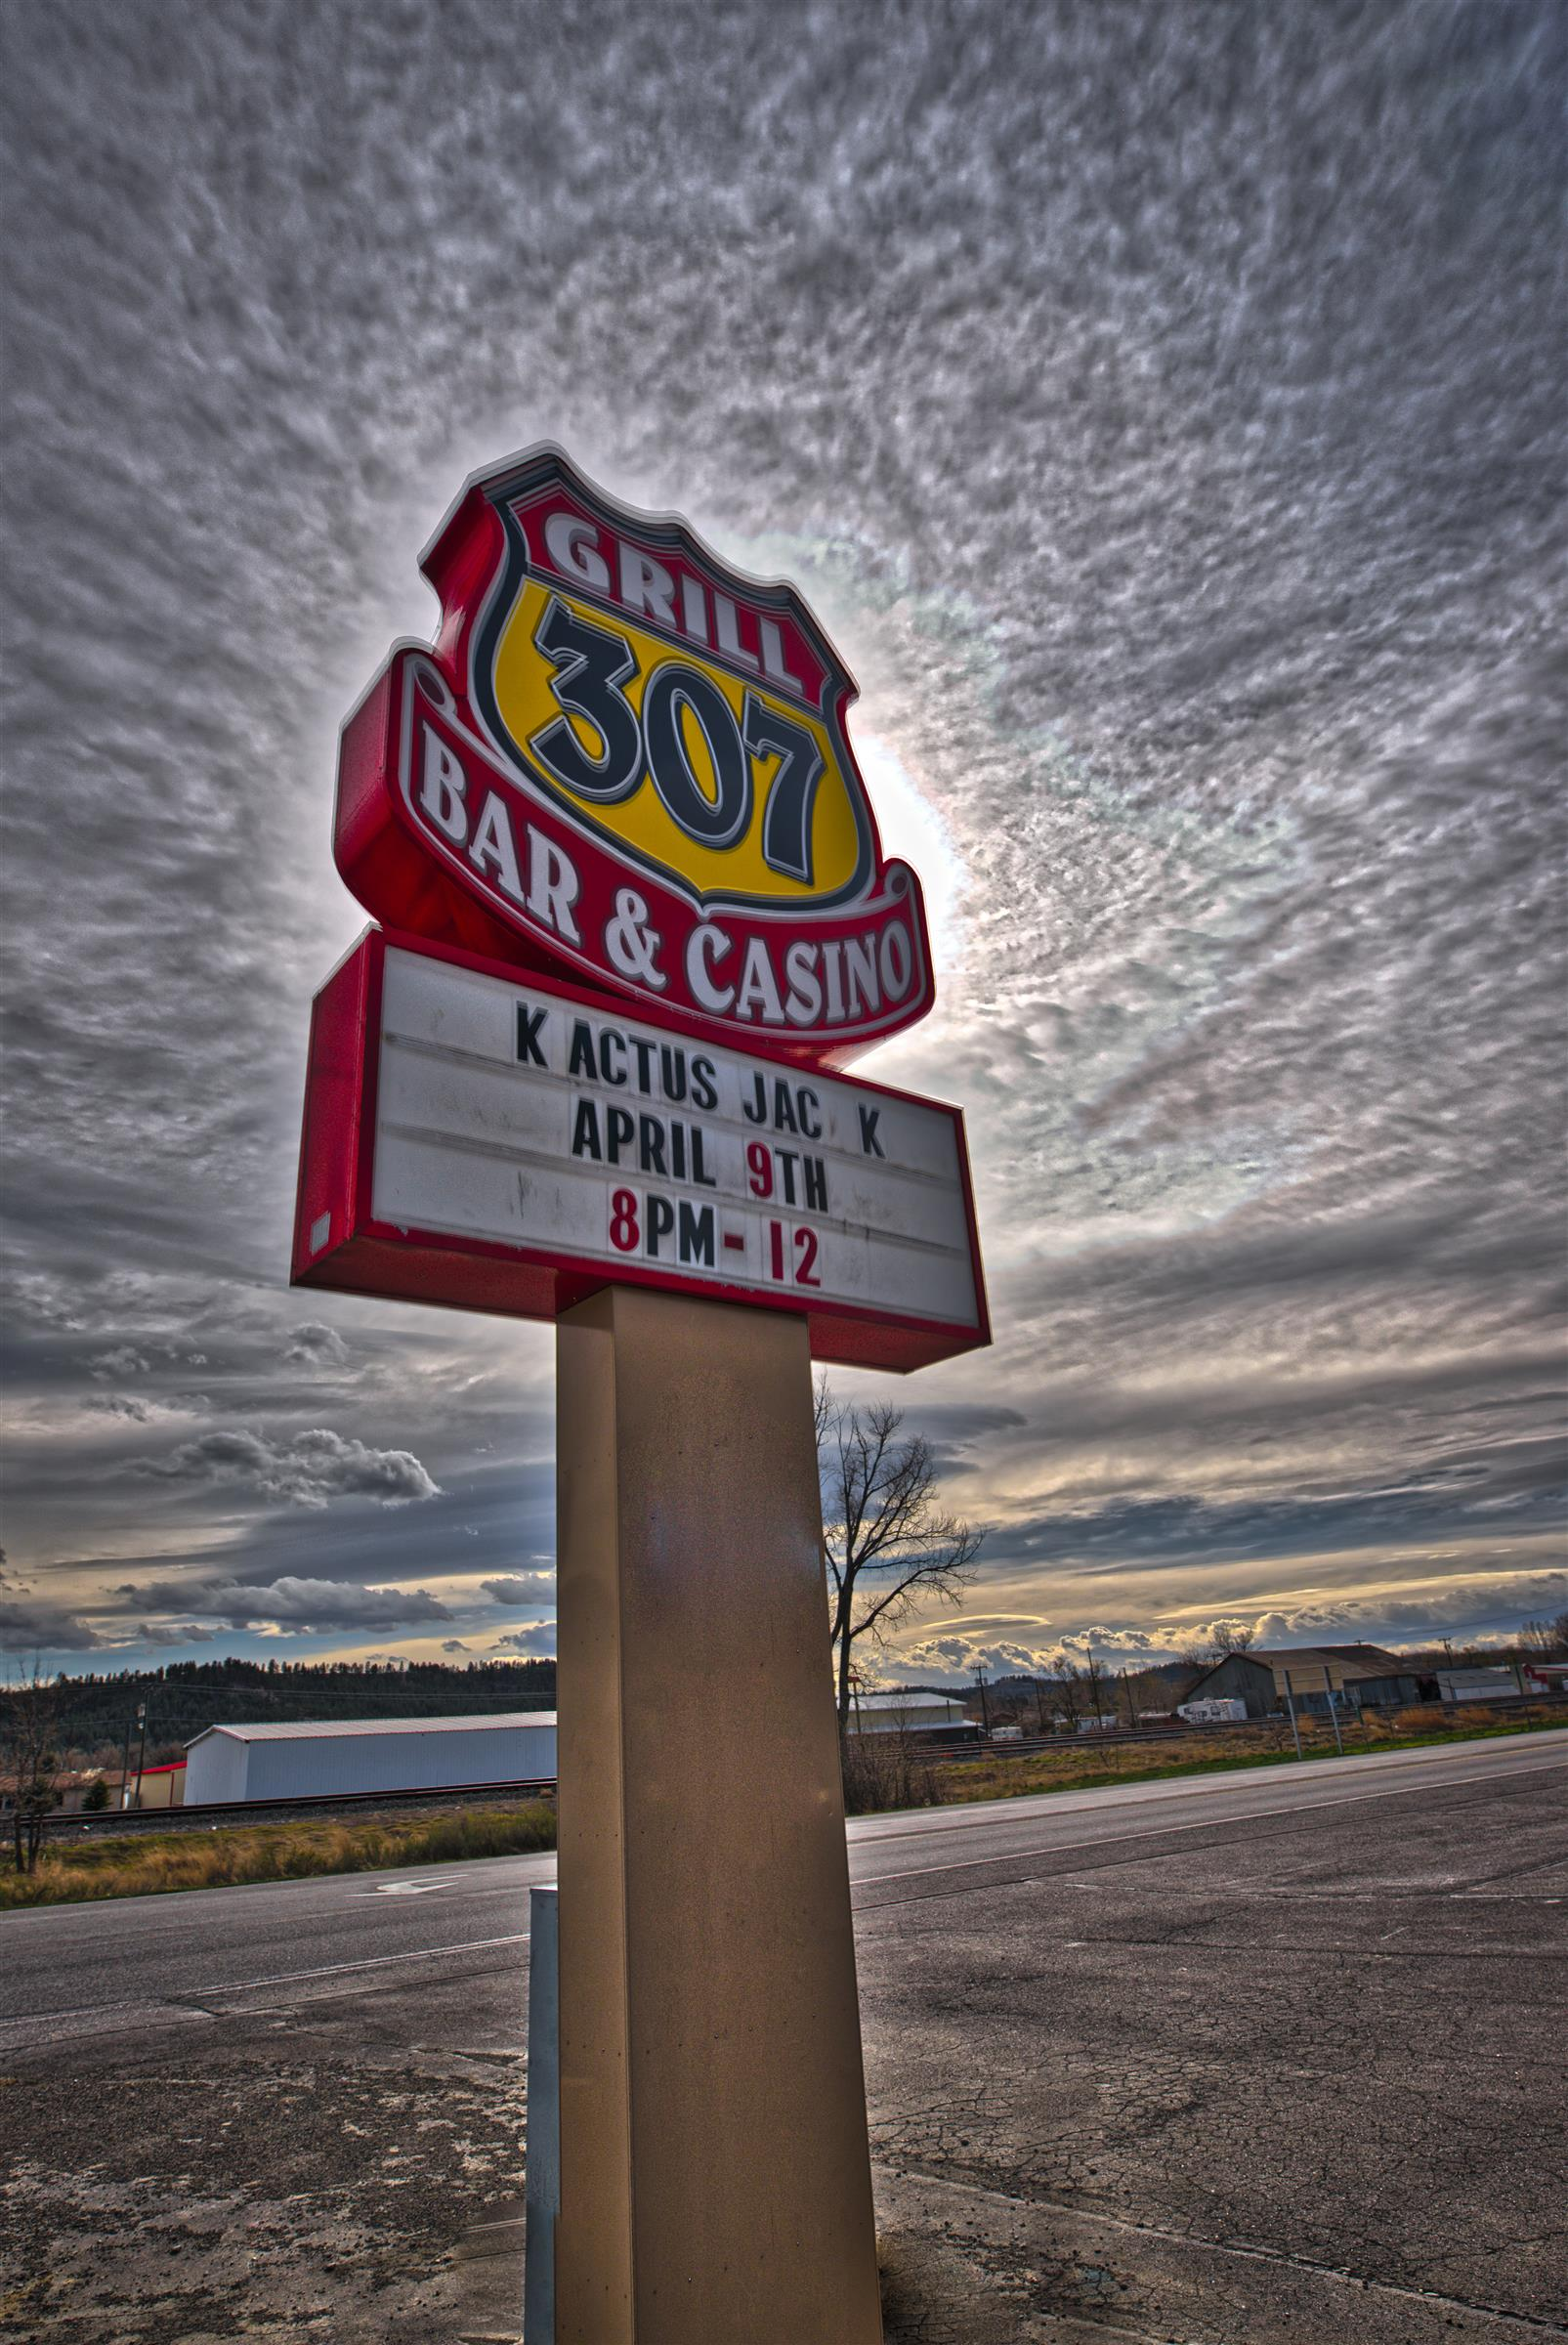 307 Bar & Grill sign outside with landscape in the background